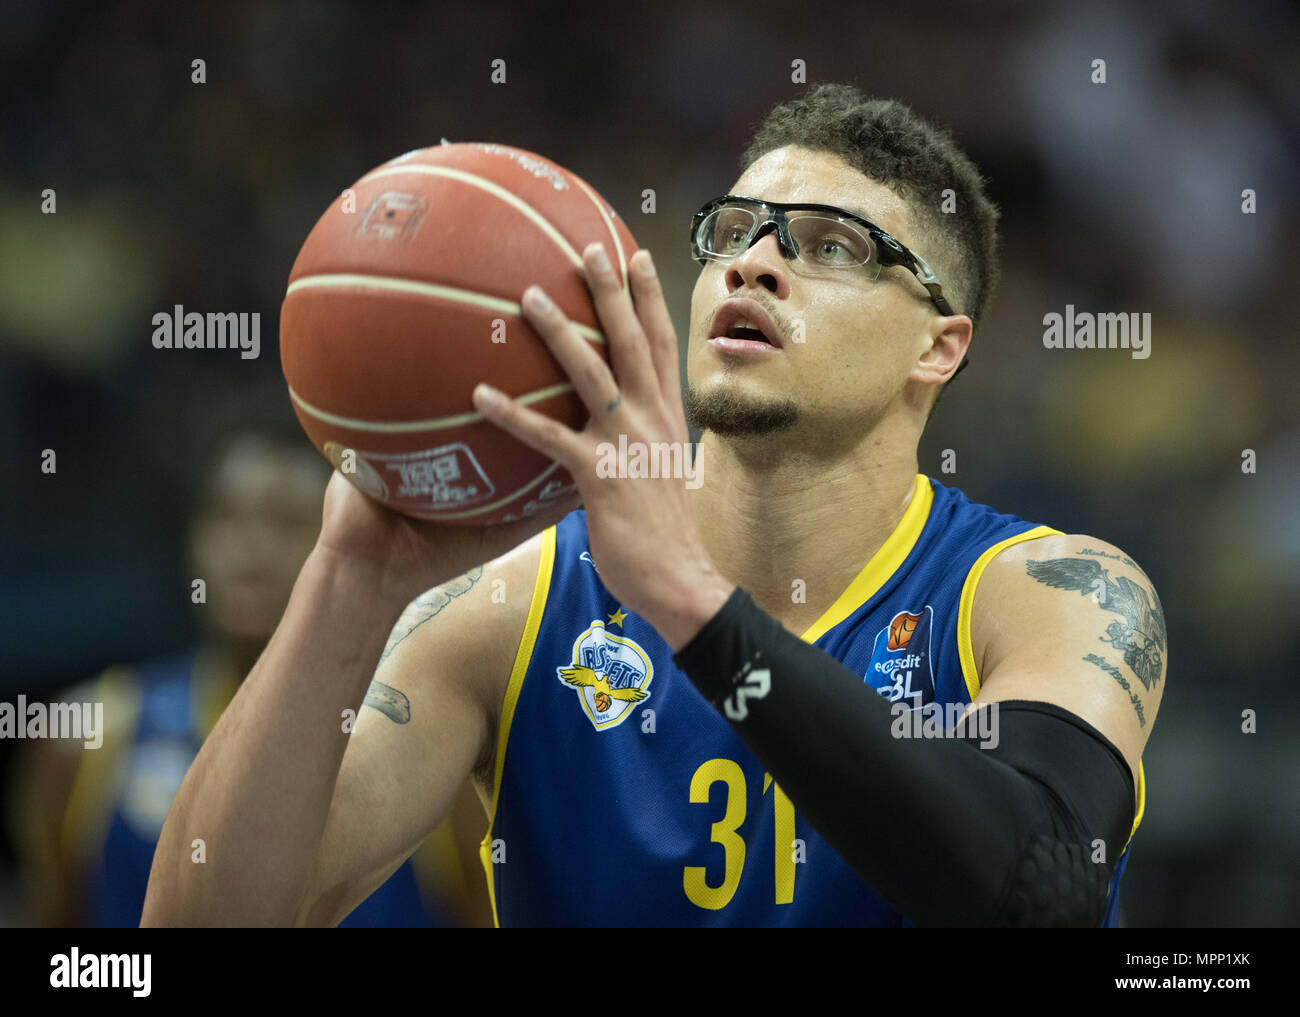 17 May 2018, Germany, Berlin: Bundesliga, quarter-final, ALBA Berlin vs. EWE Baskets Oldenburg in the Mercedes-Benz arena. Oldenburg's Isalah Philmore. Photo: Soeren Stache/dpa - Stock Image